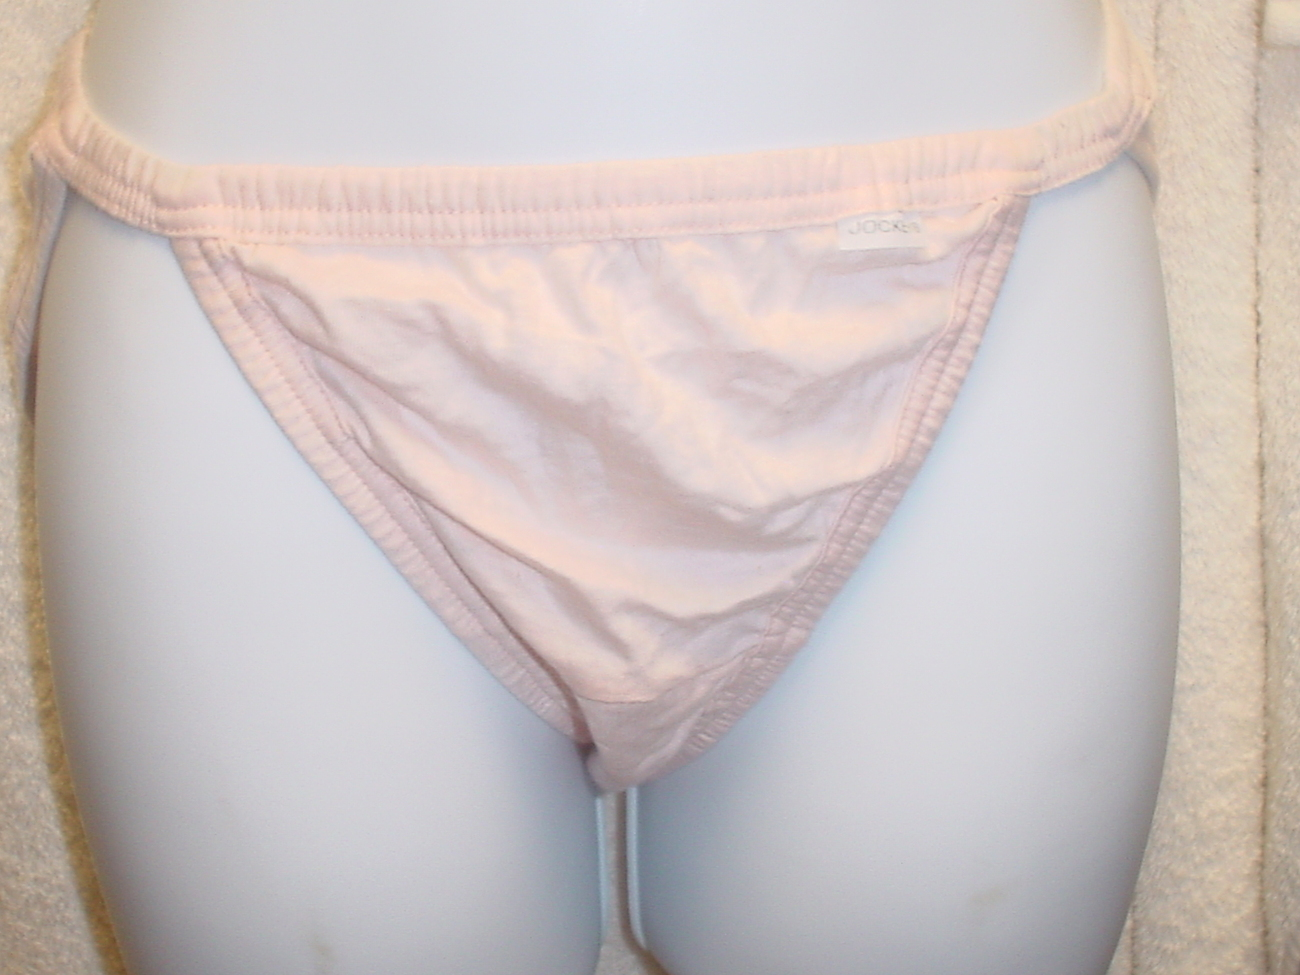 Jockey Cotton String Bikini 5/Small Pink SP-Slightly Imperfect NWOT